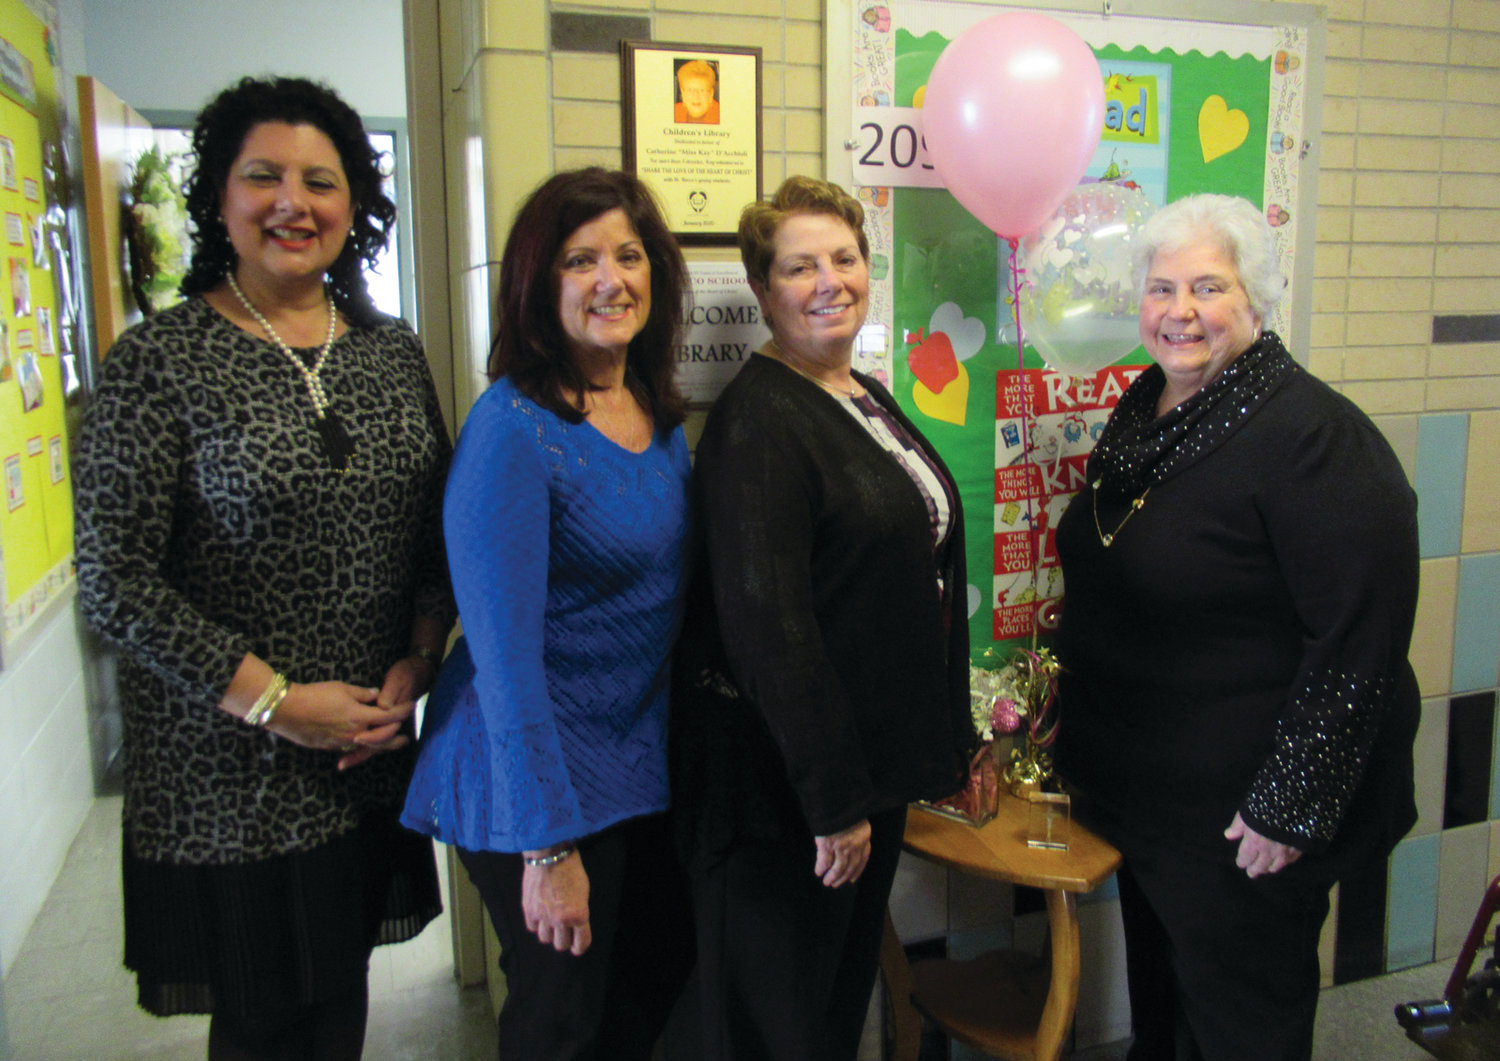 GRAND GUESTS: Lorraine S. Moschella, left, principal at St. Rocco's School, is joined by Miss Kay's nieces Alice Ballou, Catherine Parente and Betty D'Acchioli during the recent library dedication ceremony in Johnston.